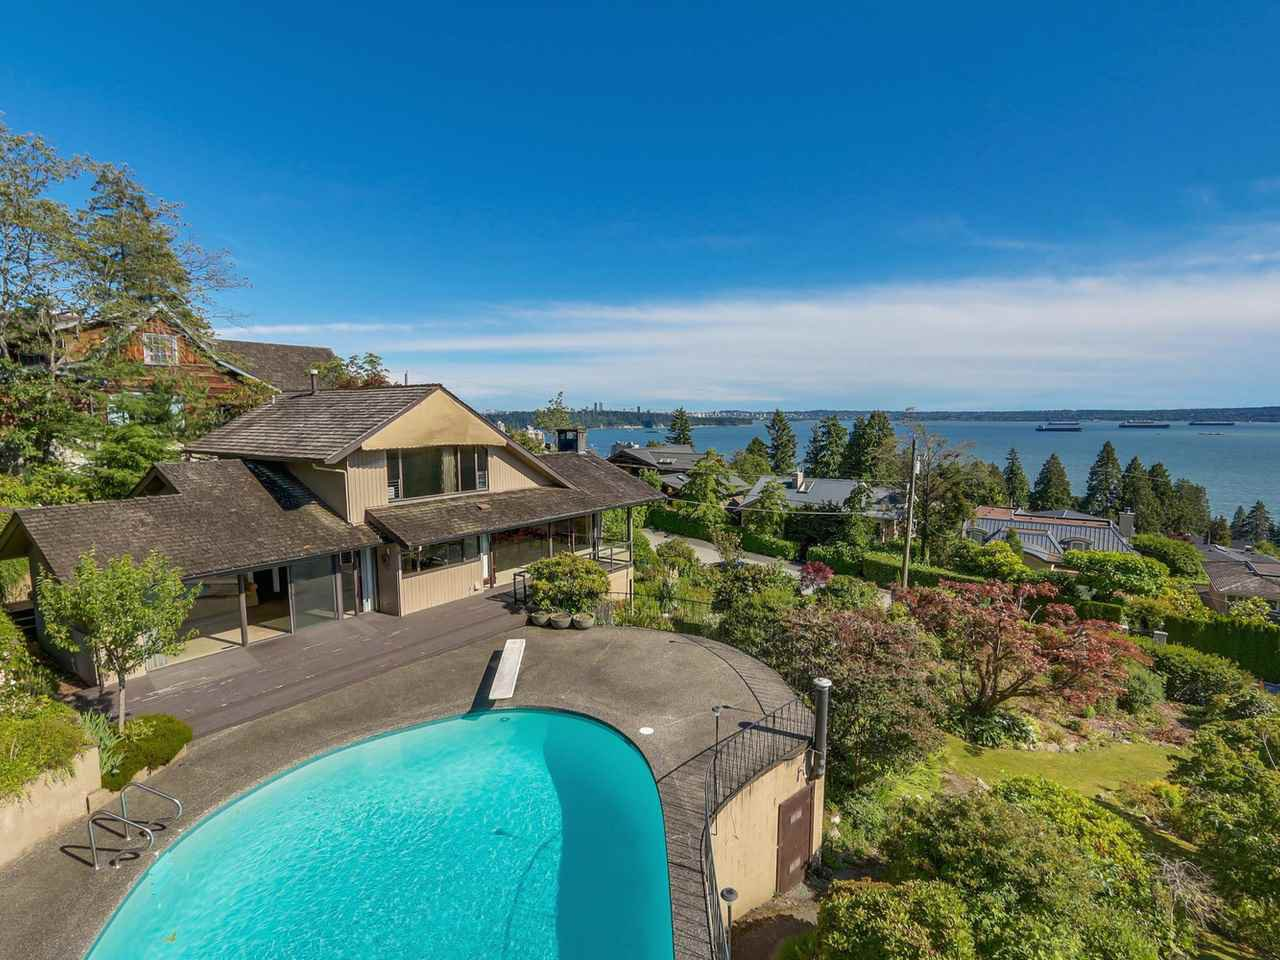 Main Photo: 2625 NELSON Avenue in West Vancouver: Dundarave House for sale : MLS®# R2087710